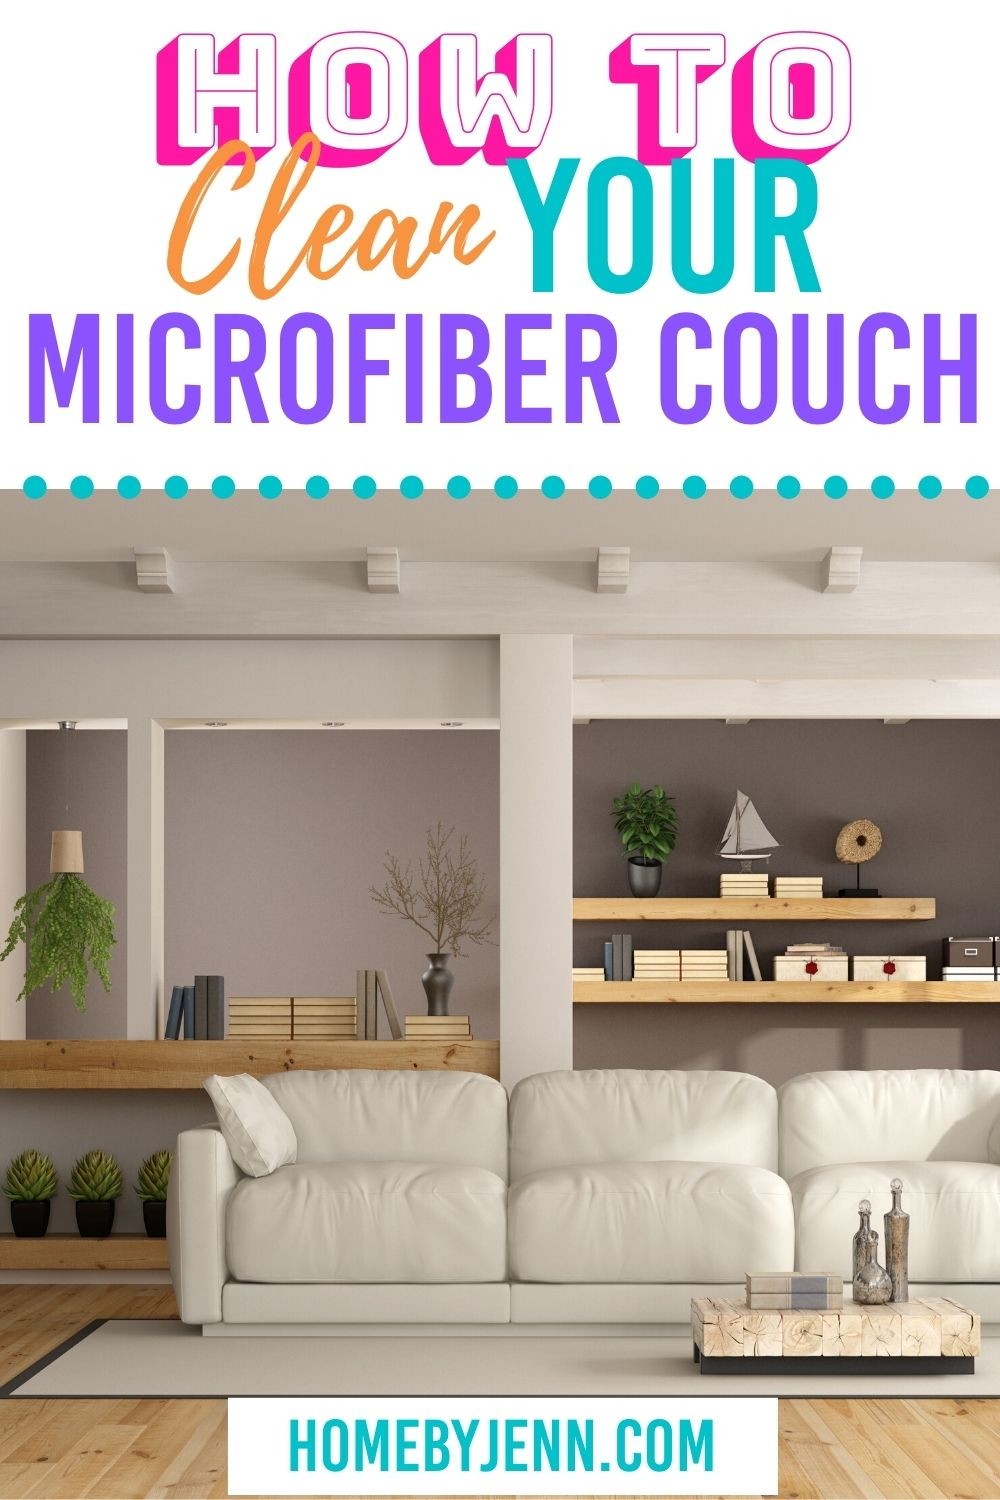 Trying to figure out how to clean your microfiber couch? These simple cleaning tips will have it looking new again in no time at all!#howtocleanyourmicrofibercouch #couchcleaningtips #springcleaning via @homebyjenn